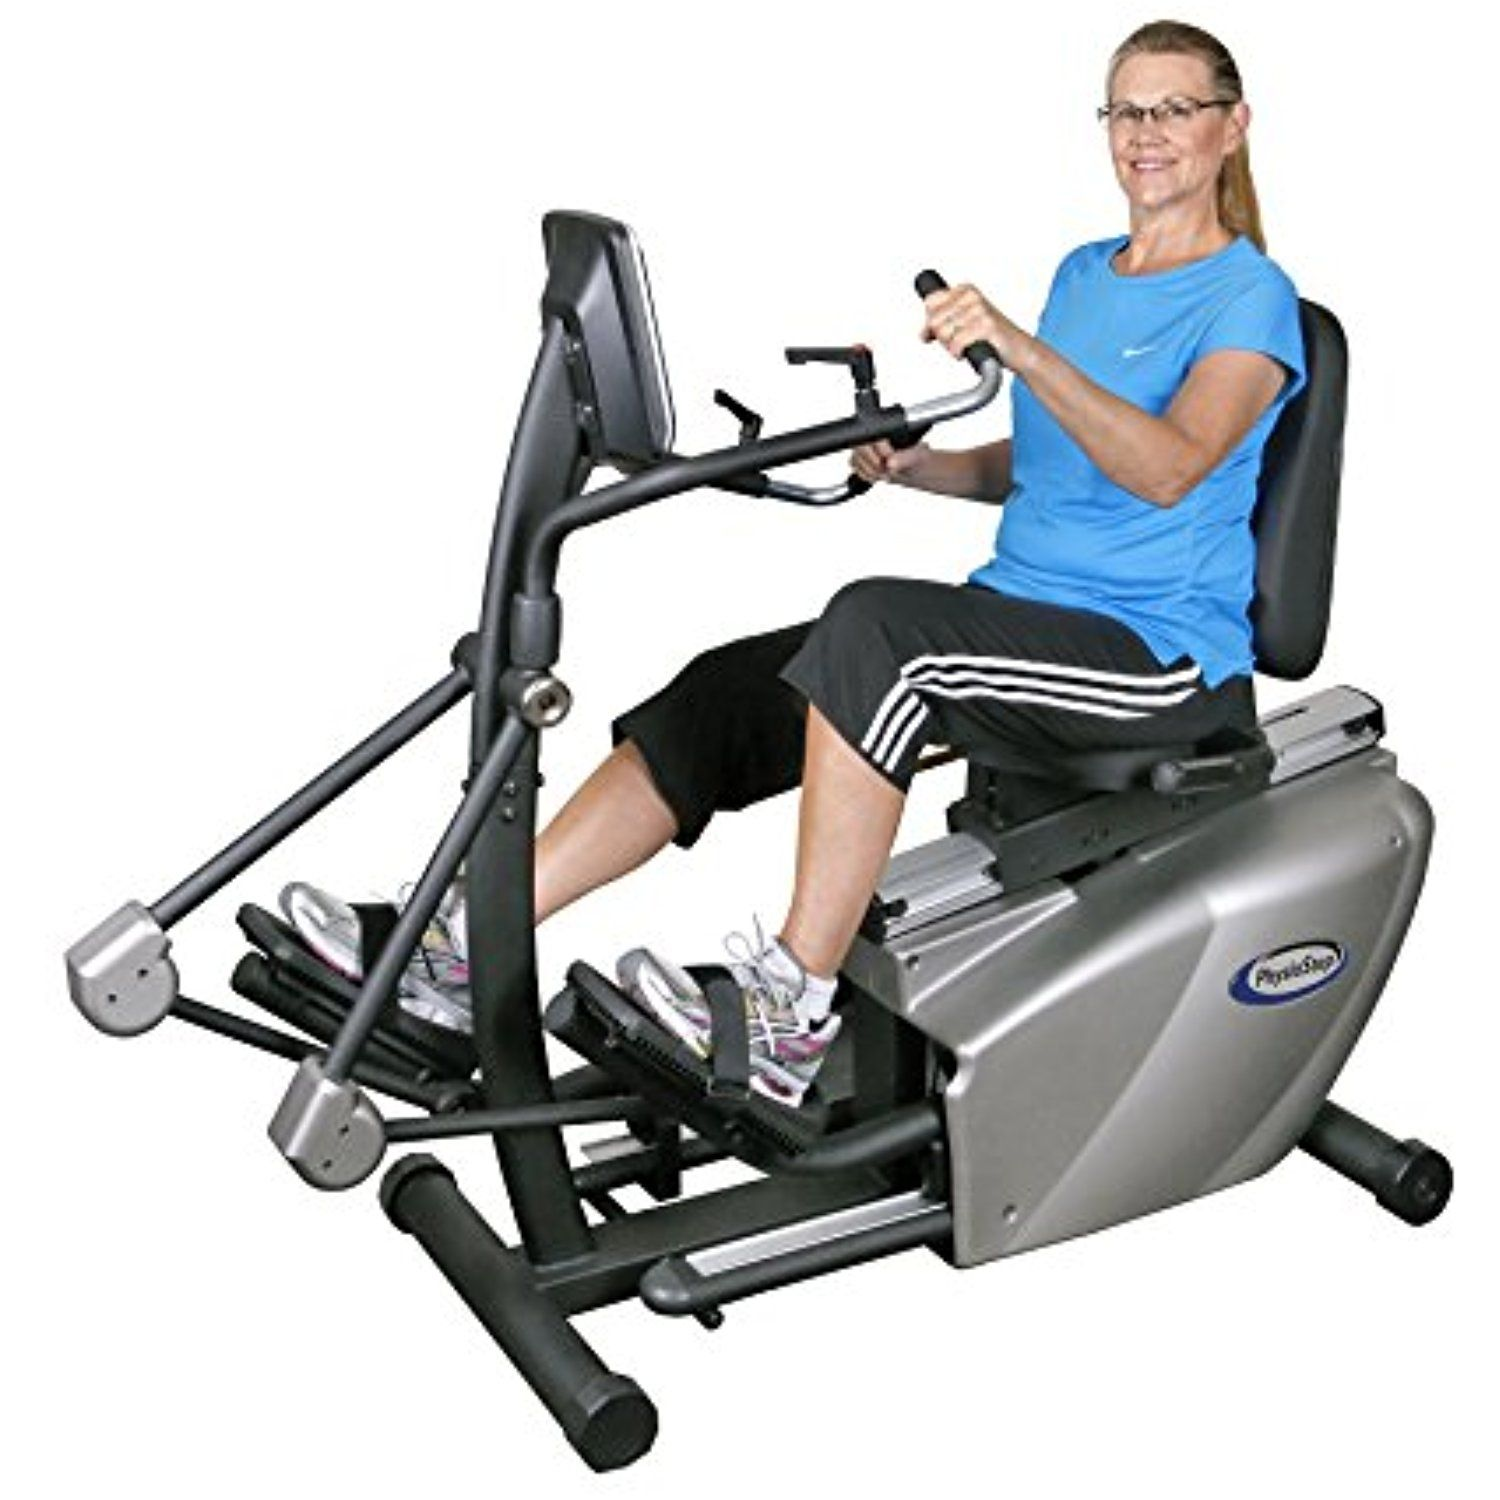 Hci Fitness Physiostep Ltd Seated Elliptical Trainers Learn More By Visiting The Image Link This Is An Biking Workout Workout Programs Elliptical Trainers